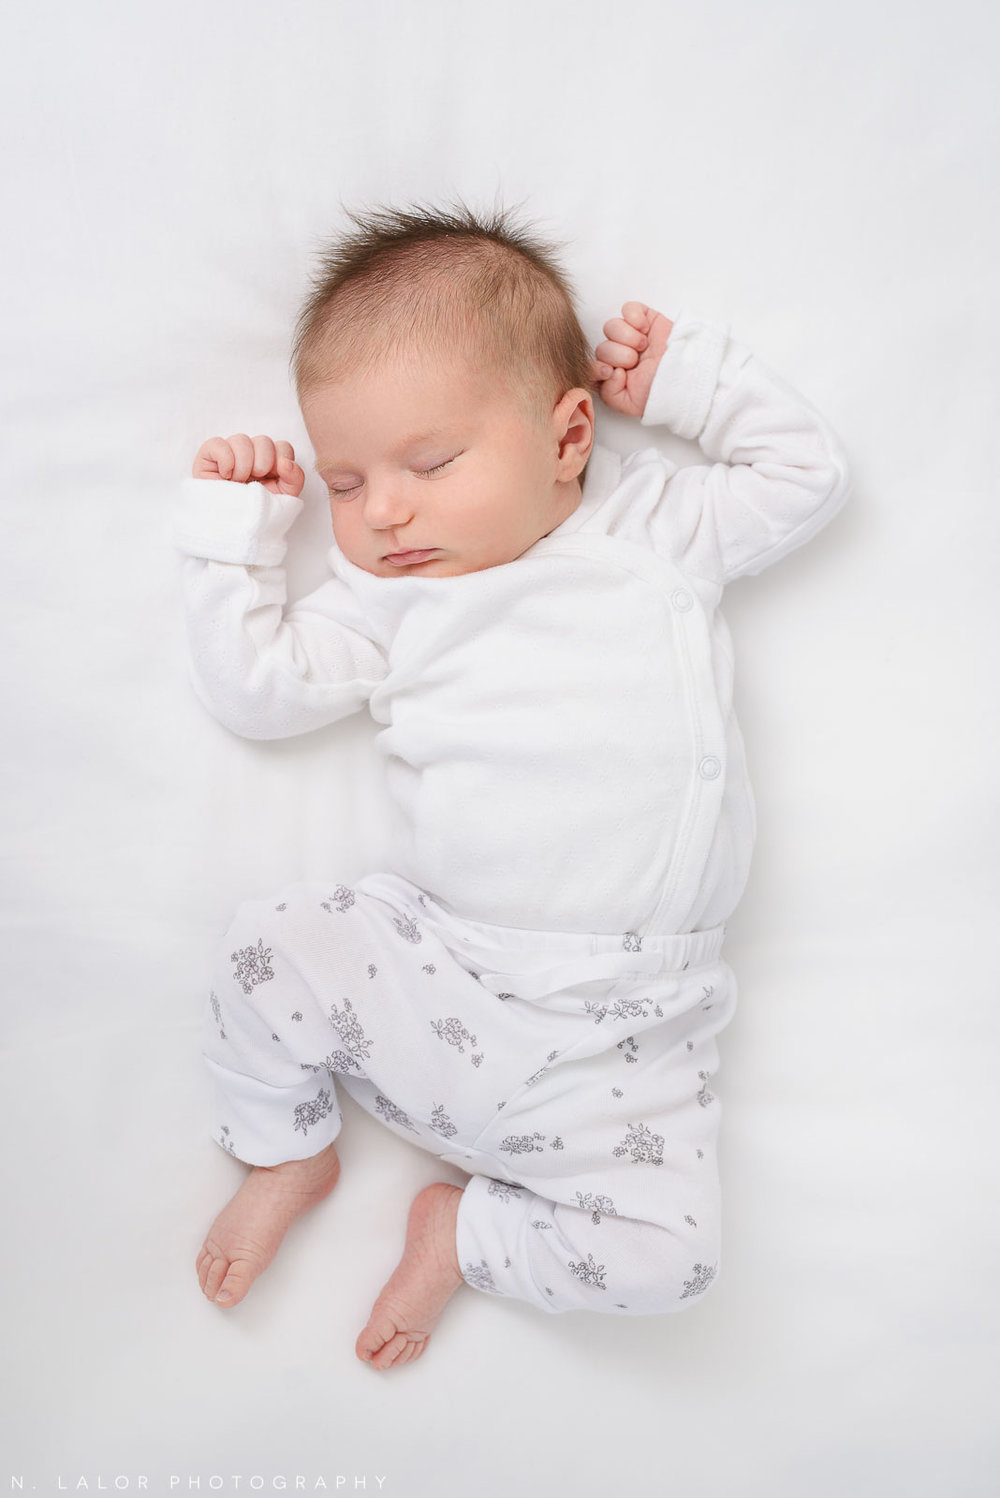 02-newborn-baby-portrait-greenwich-ct.jpg